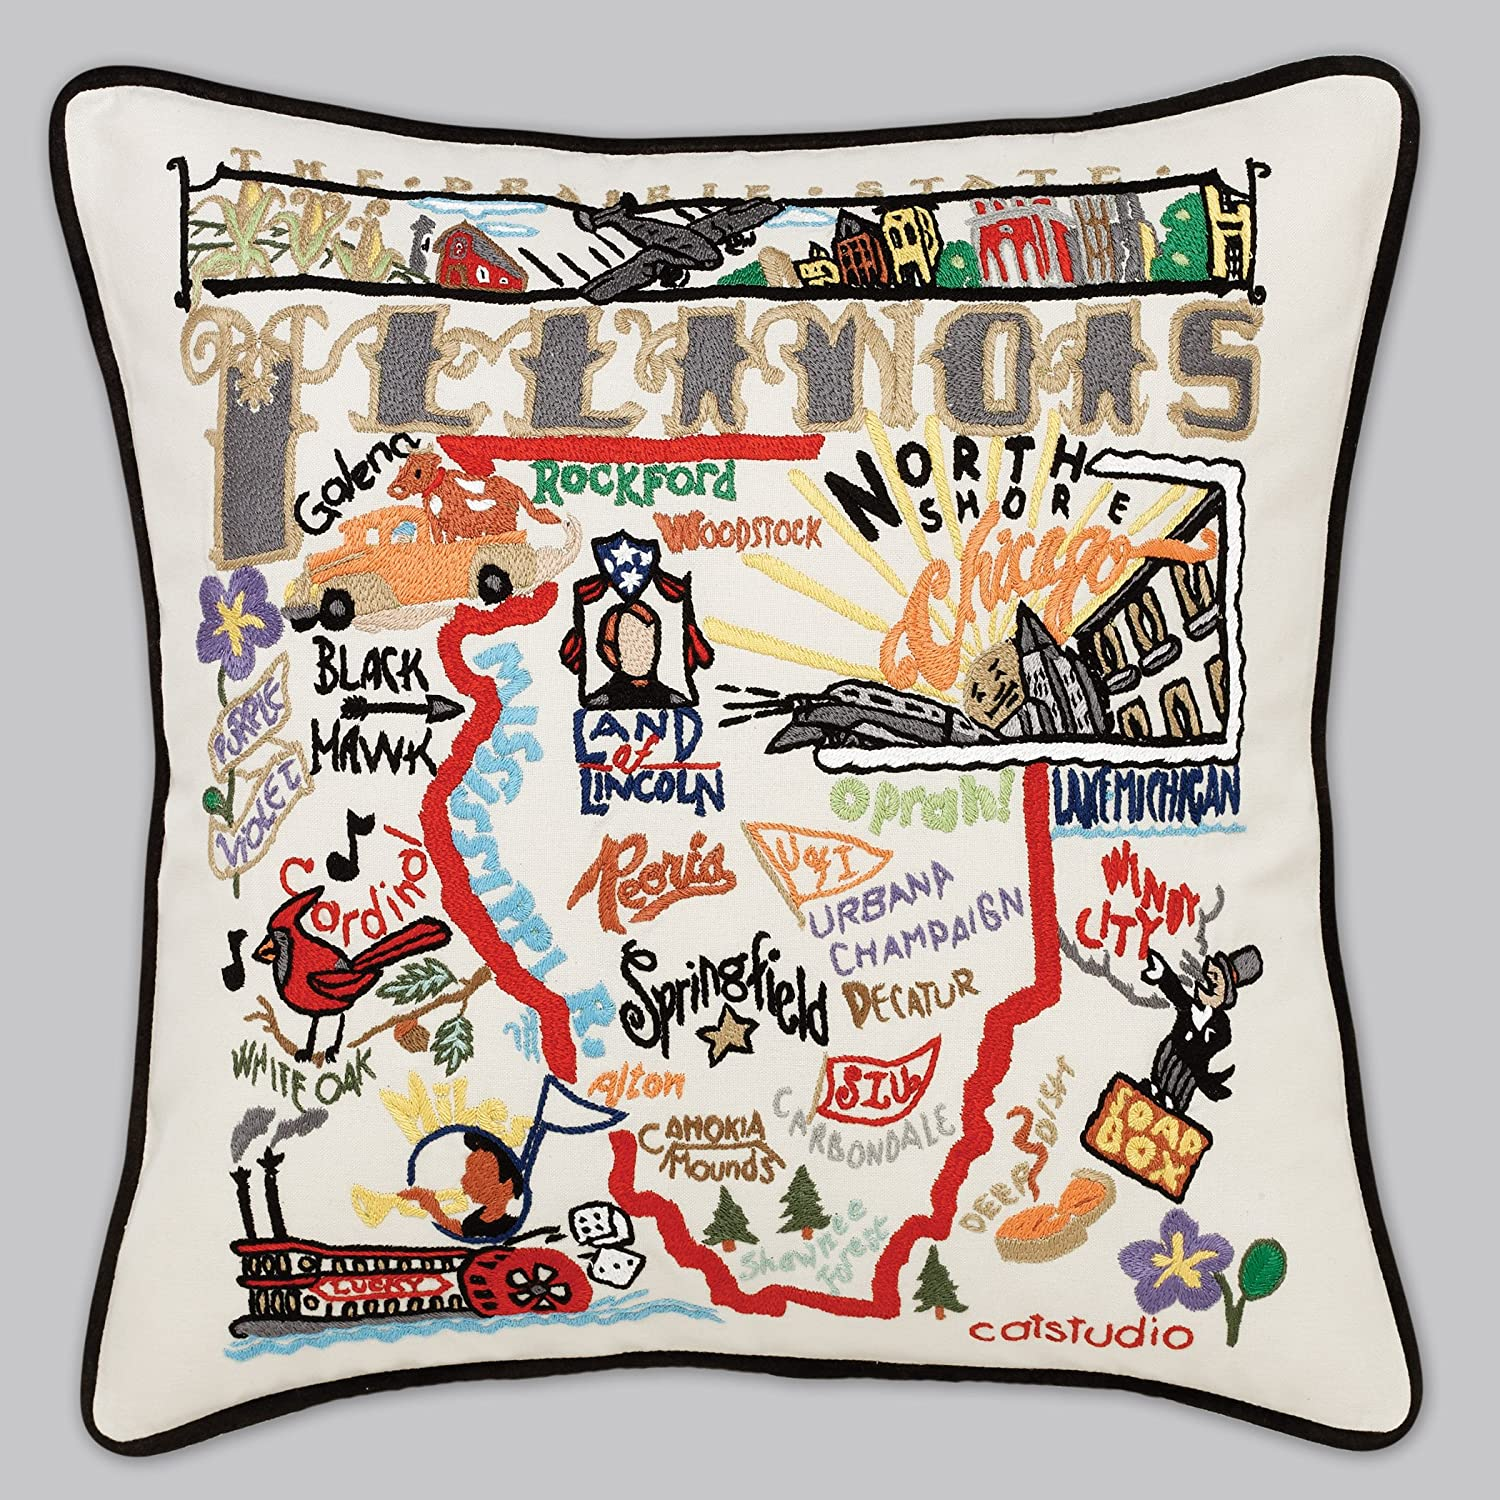 embroidered countries of cup fantastic adore pillow minnesota cities i and t these states a parks they aren jo state national which pillows united hand feature regions